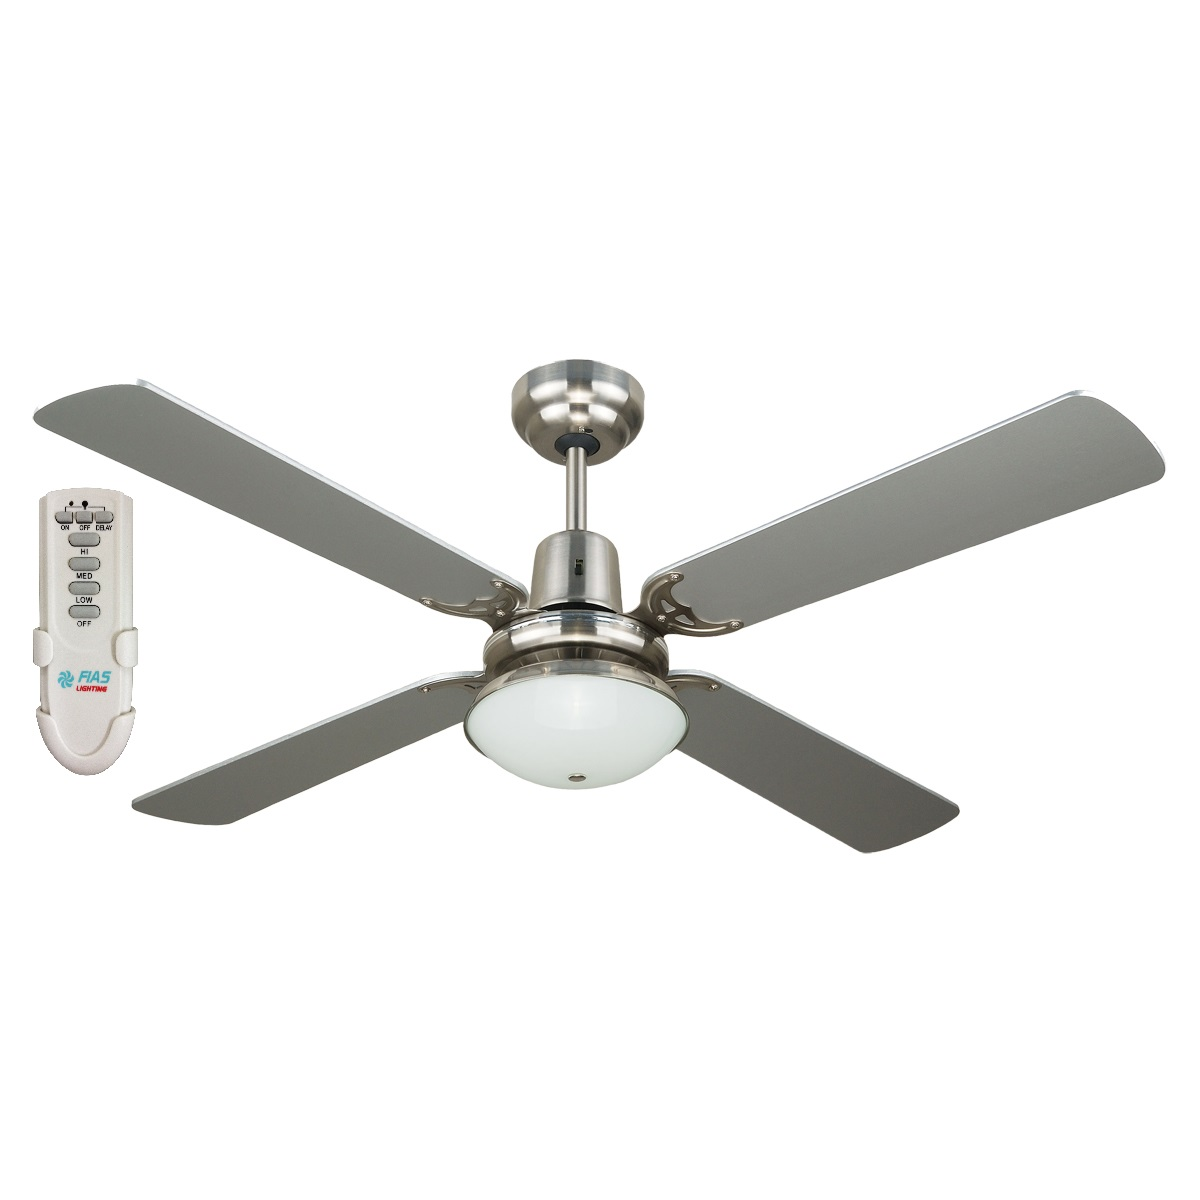 Ramo 48 Fan Light Remote Silver Ramo48sil Jpg